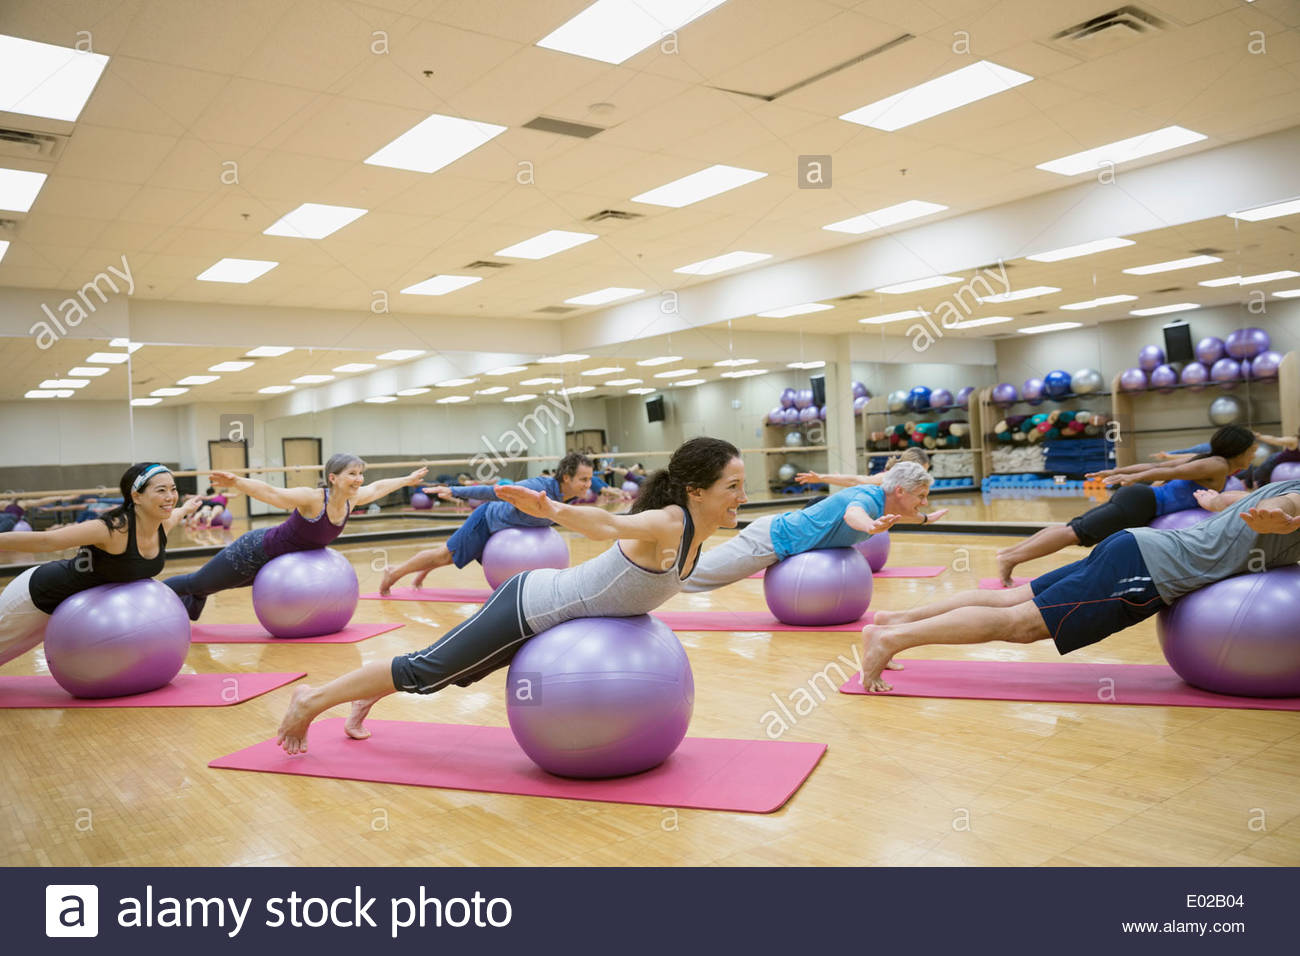 Group balancing on fitness balls in exercise class - Stock Image